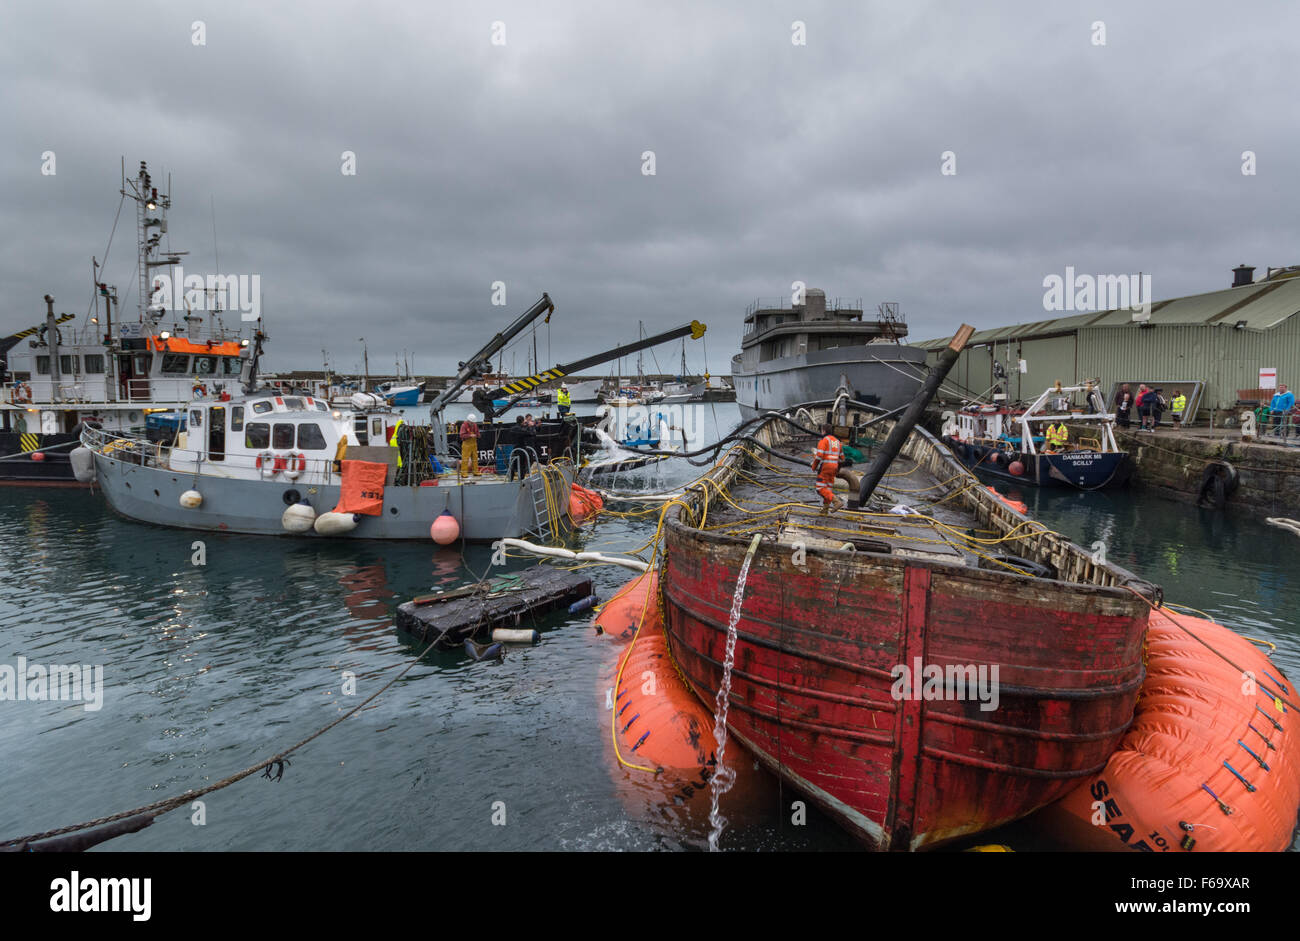 Penzance, Cornwall, UK. 15th November 2015. The Jolly Roger a Norwegian built ex fishing boat made of oak, being - Stock Image